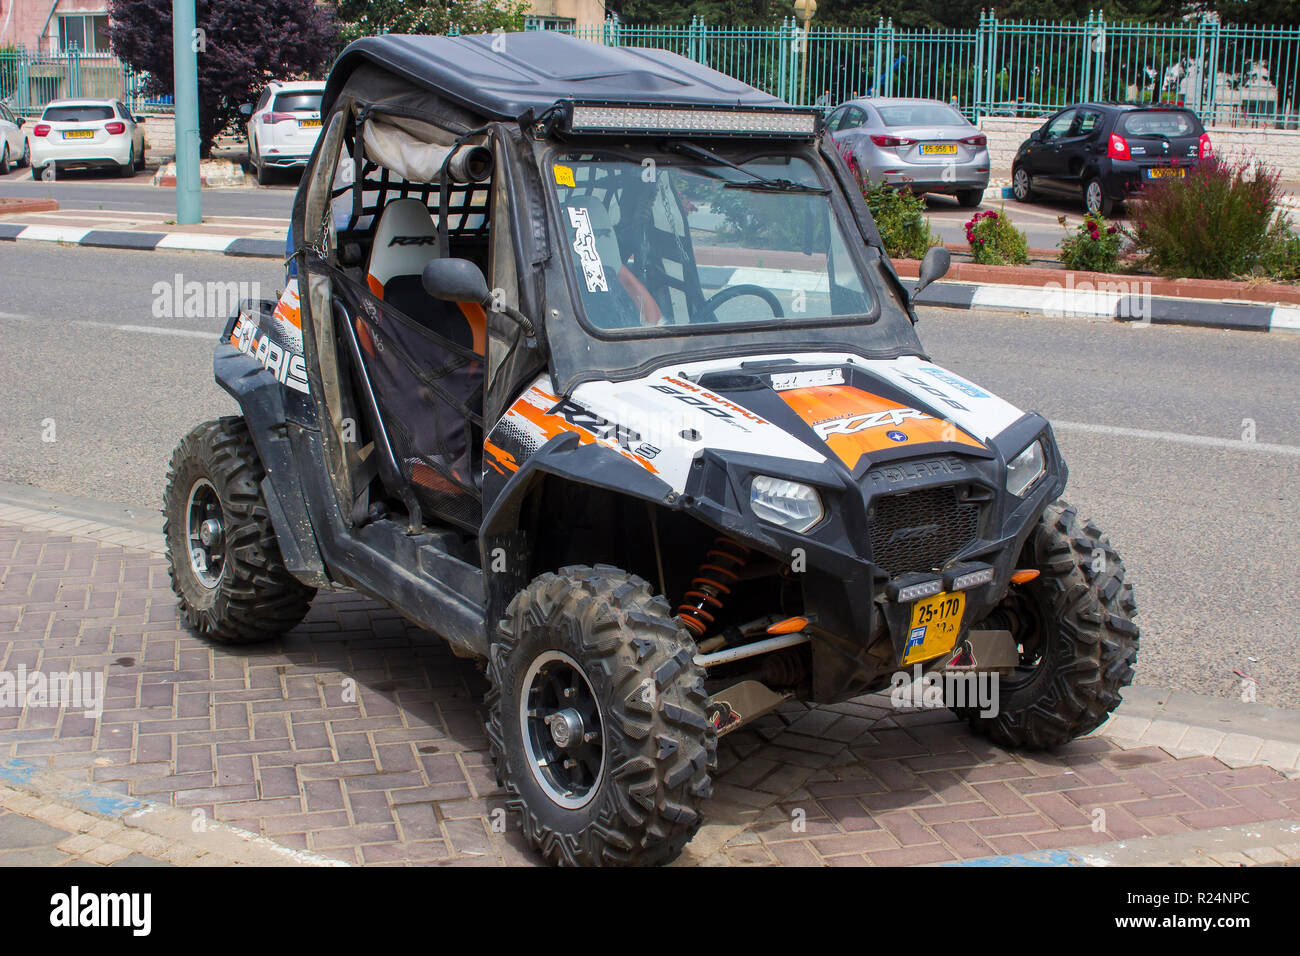 4 May 2018 A Polaris Razor off road petrol power vehicle parked on the main street of Buqata a small Druze Arab town in the Golan Heights North Israel - Stock Image